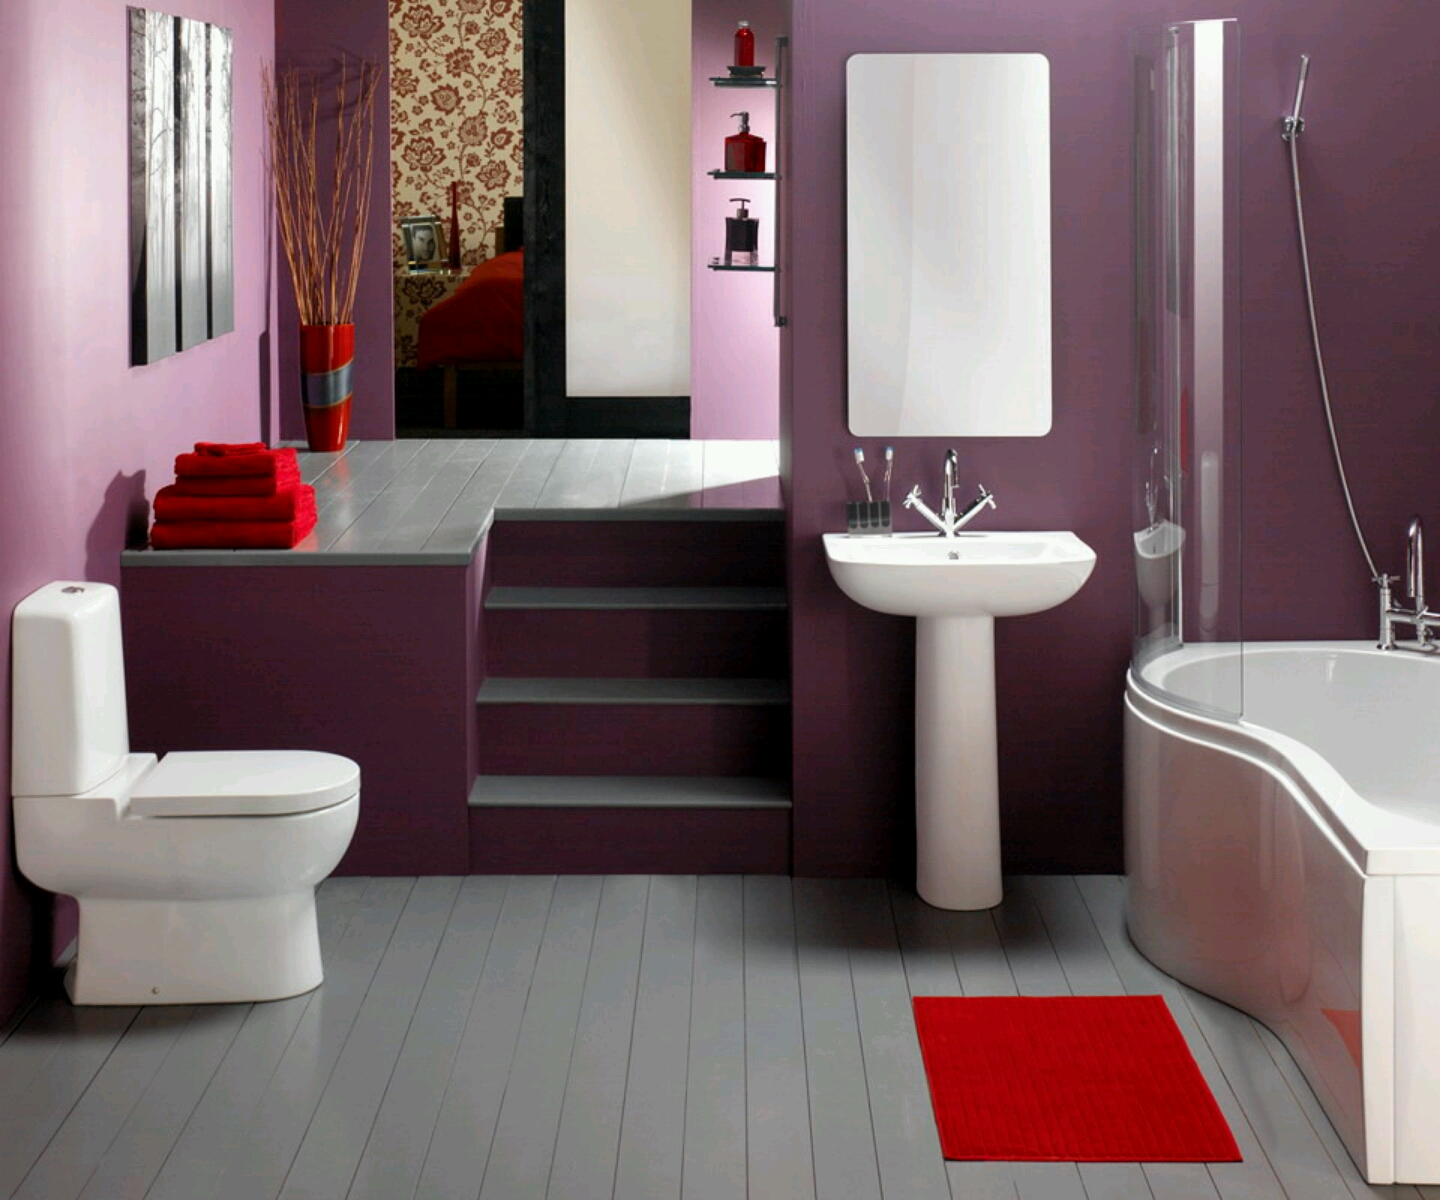 New home designs latest luxury modern bathrooms designs decoration ideas - Bathroom decorative ideas ...